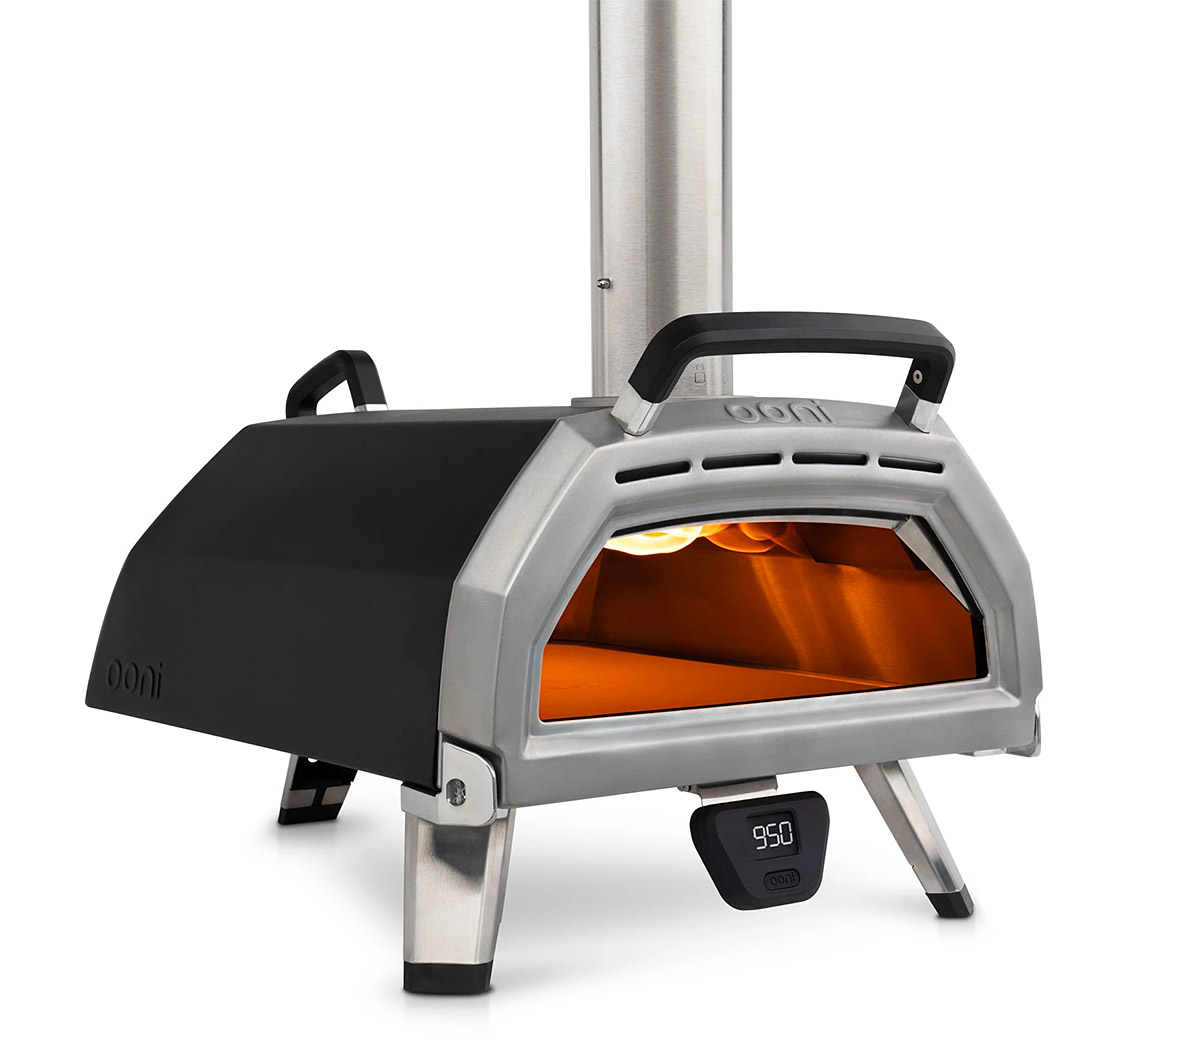 This Pizza Oven is The One at werd.com